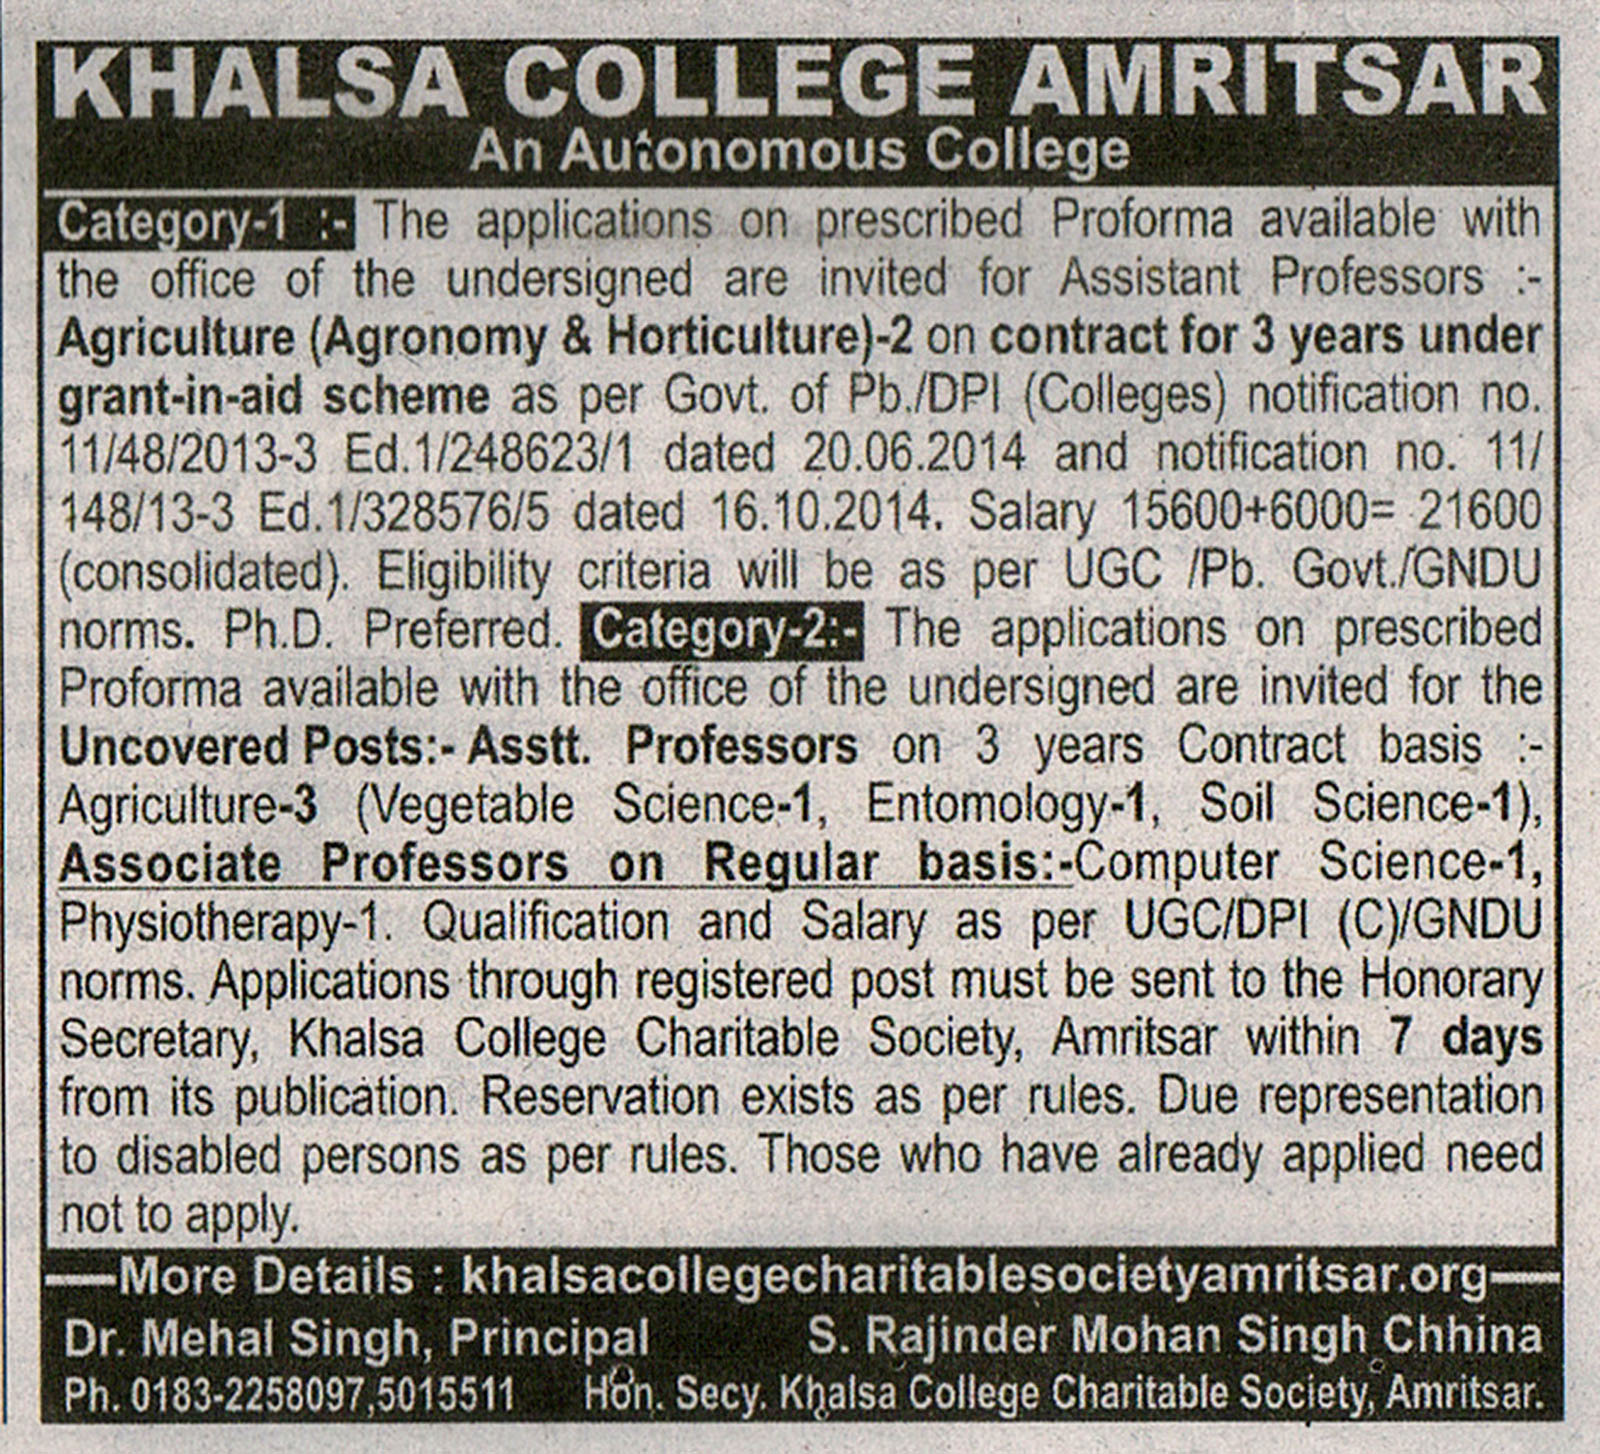 khalsa college amritsar recruitment 2017